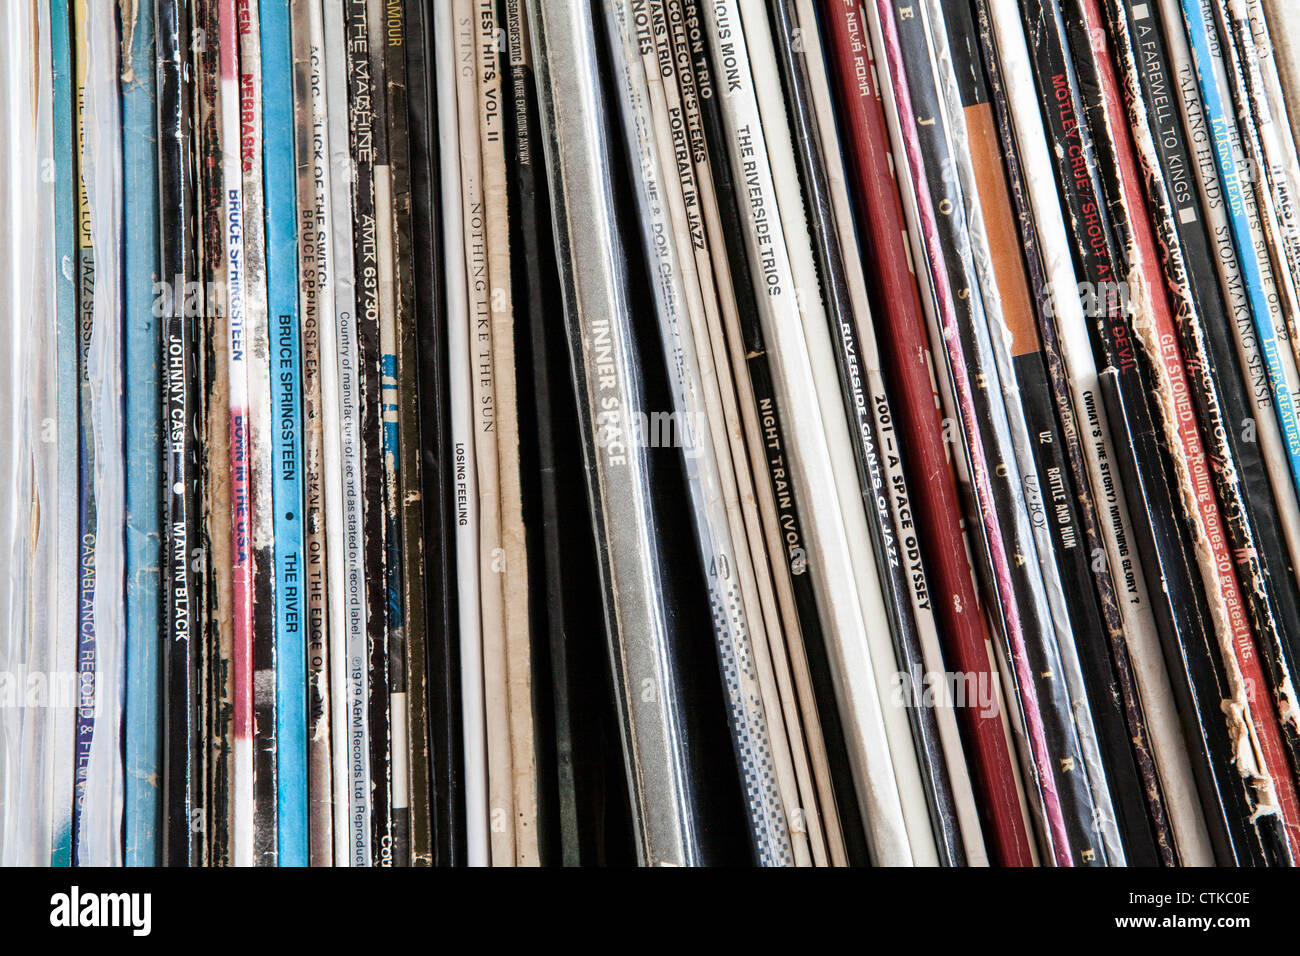 collection-of-vinyl-records-on-a-shelf-C